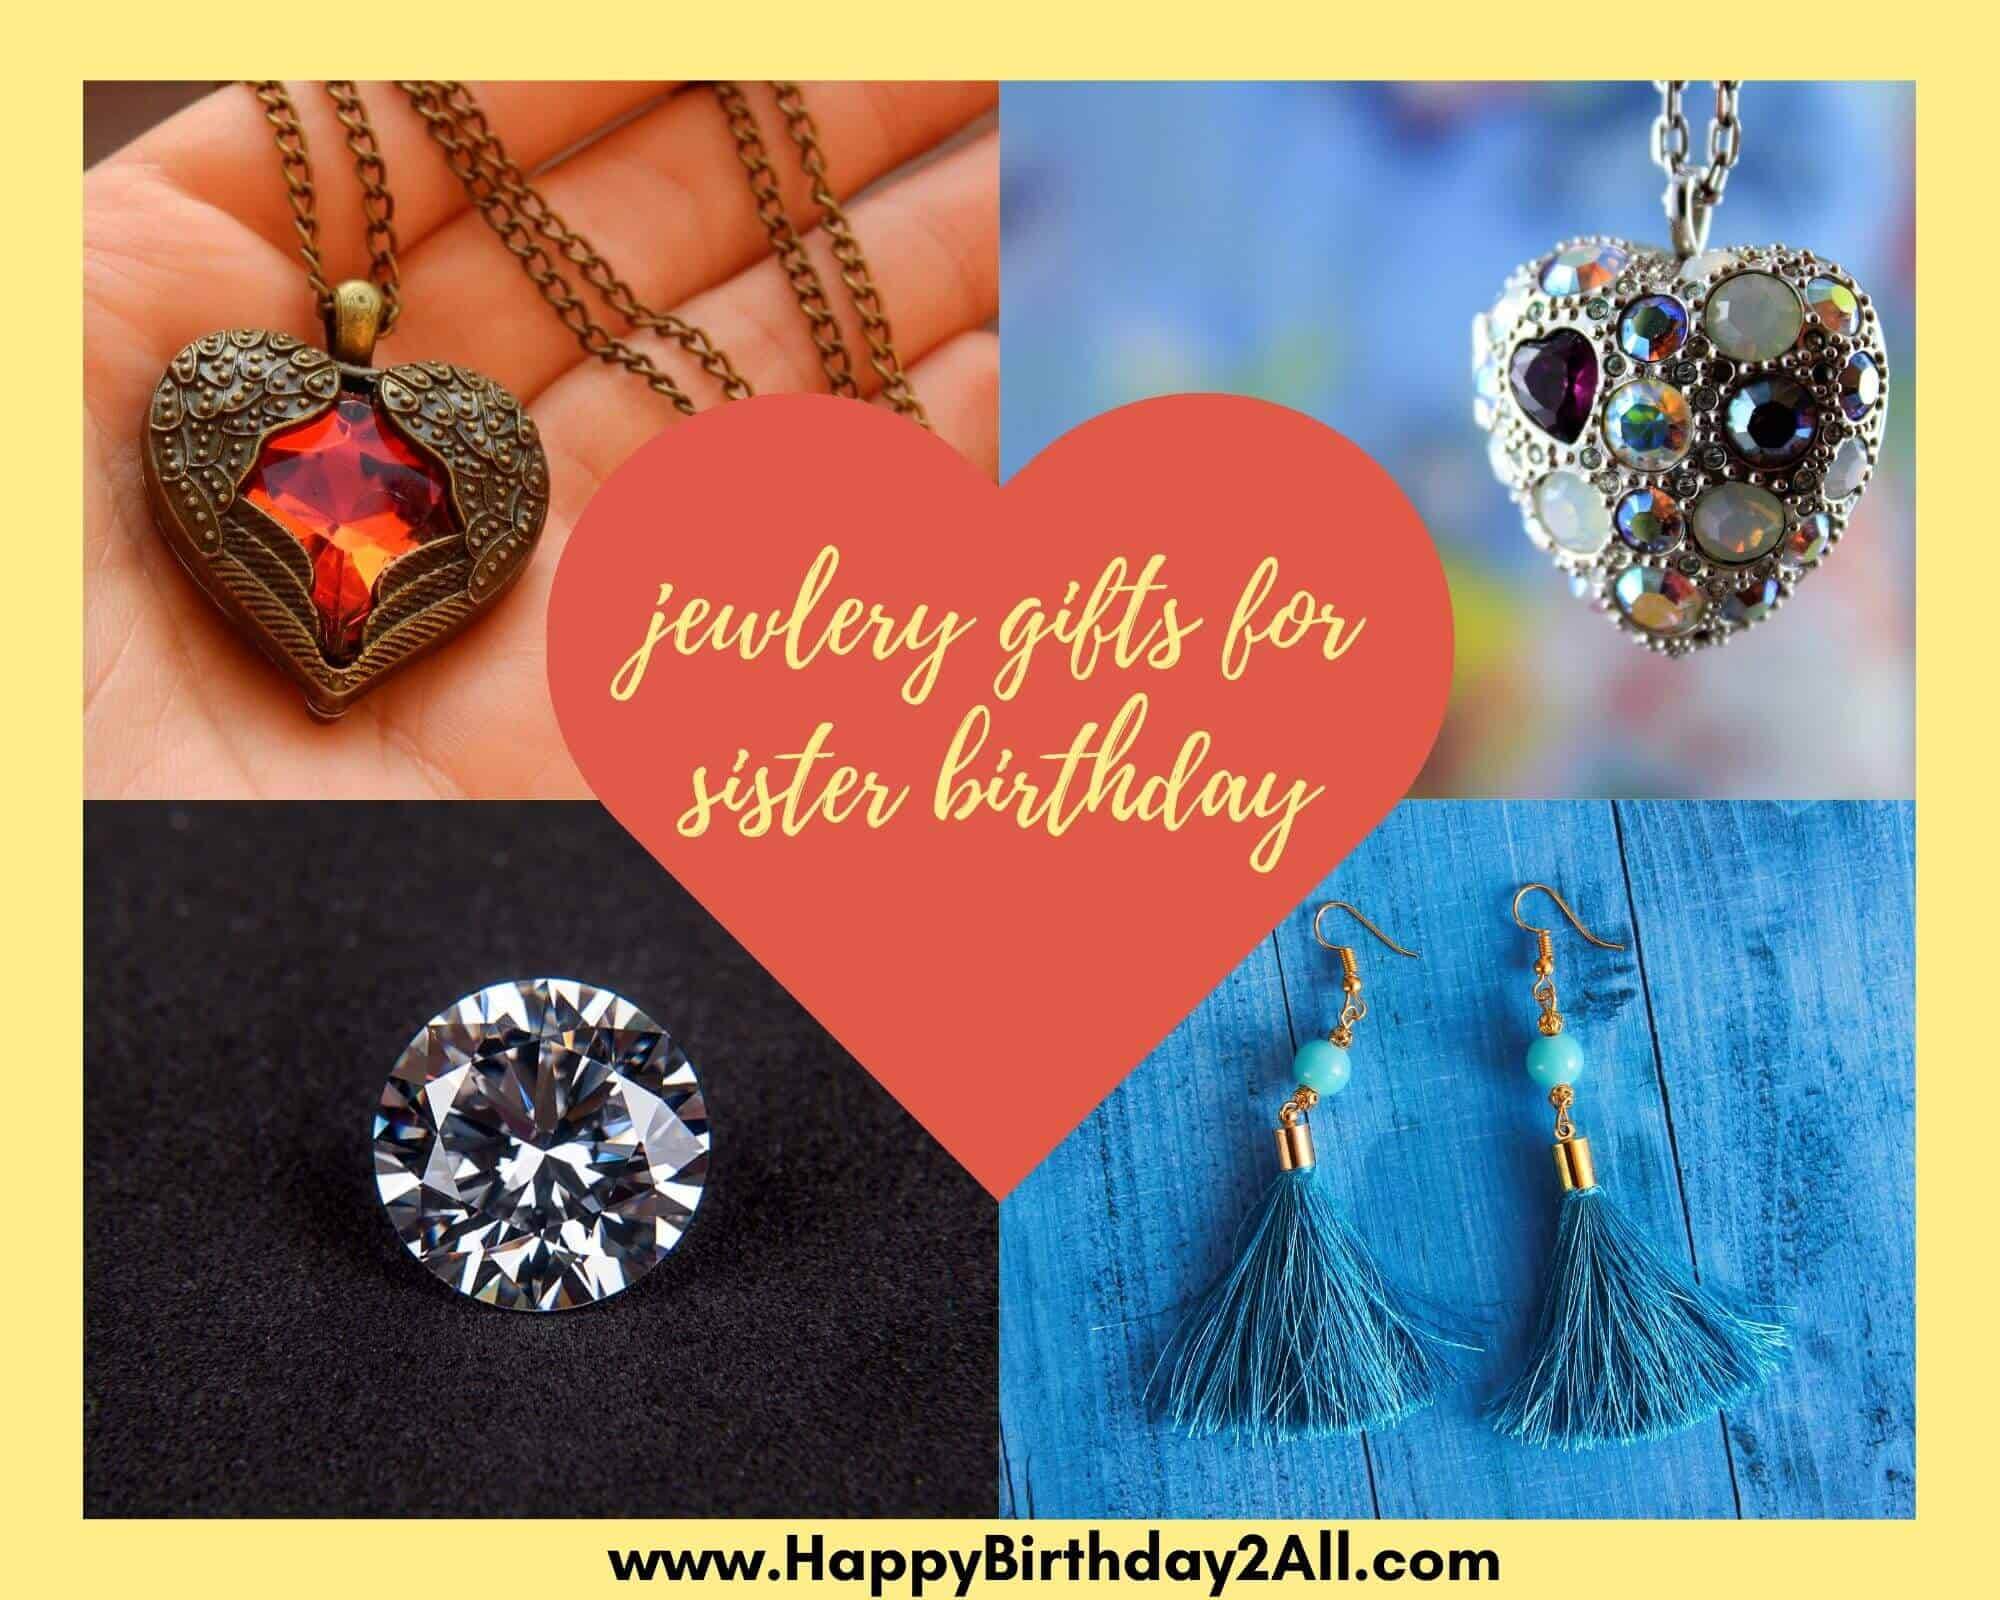 jewlery gifts for sister birthday